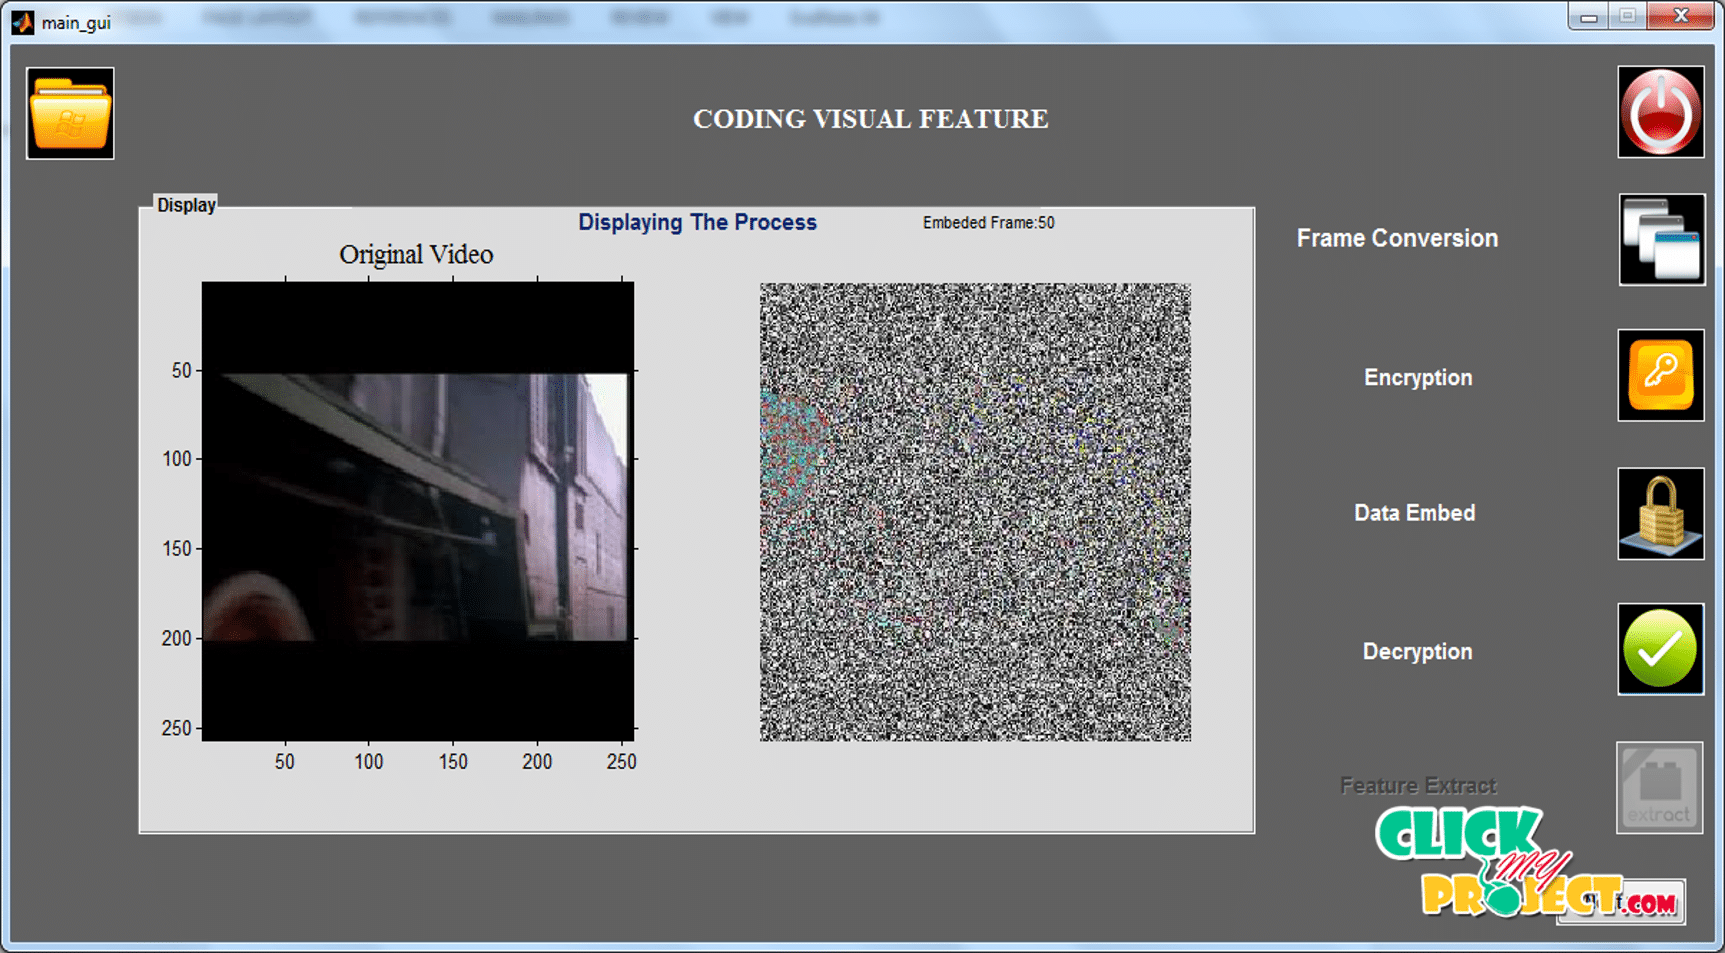 Coding Visual Features Extracted From Video Sequences | 2015 Projects